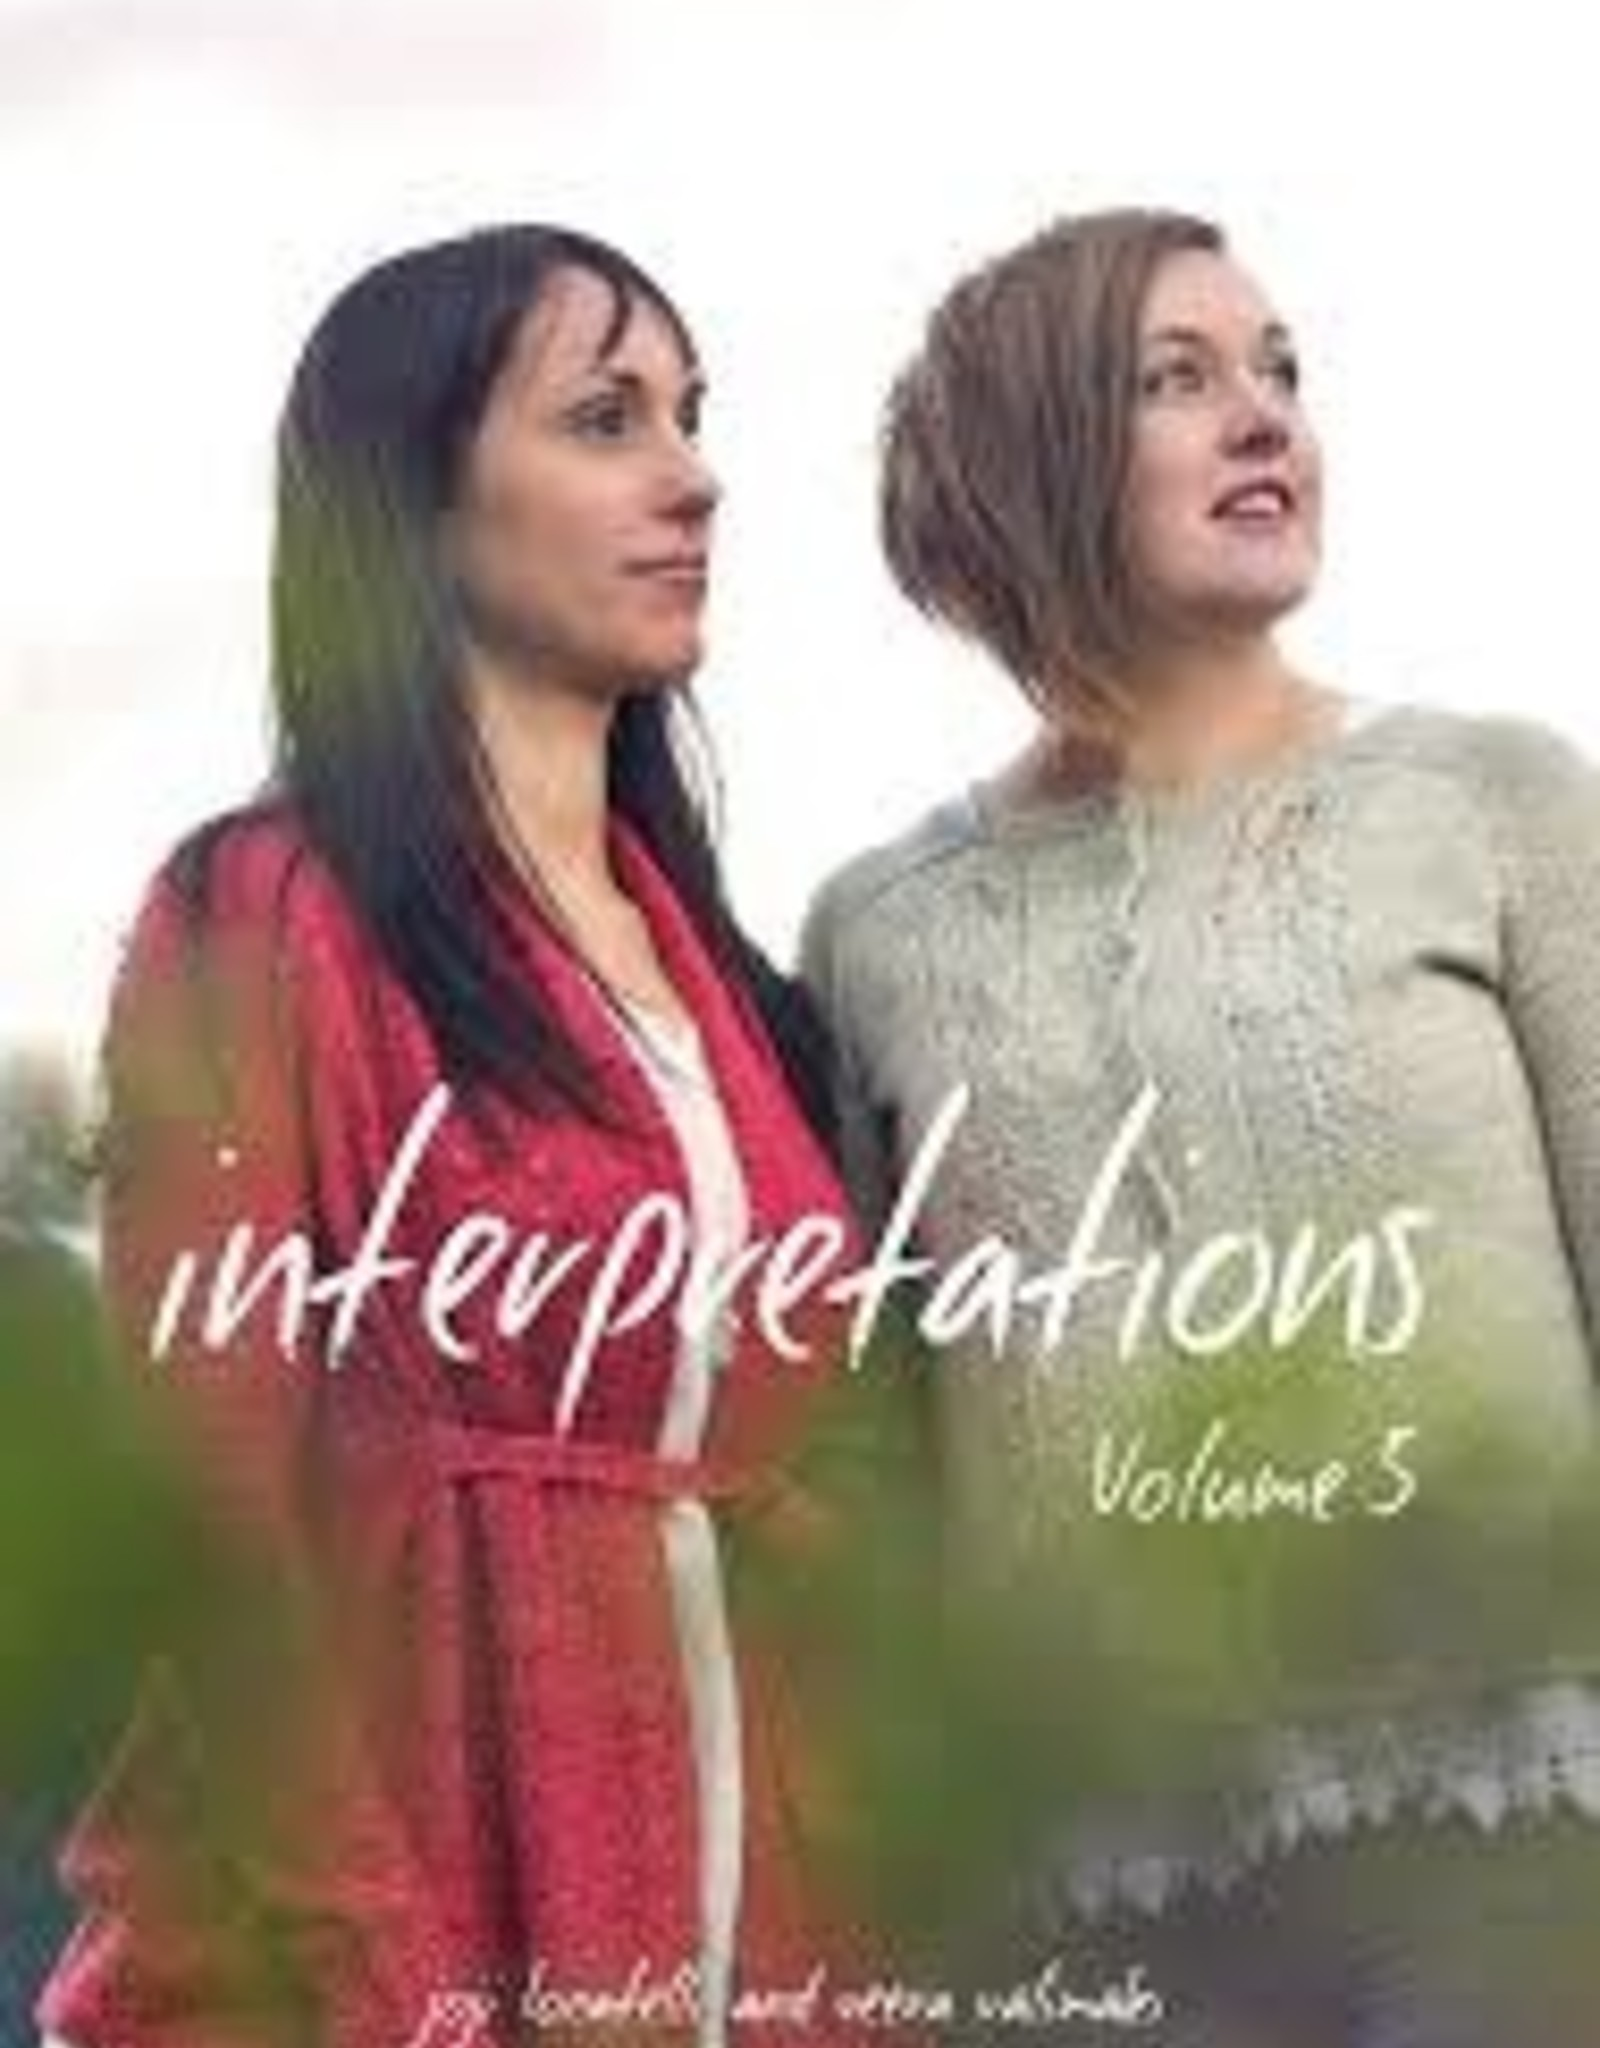 Interpretations Book 5